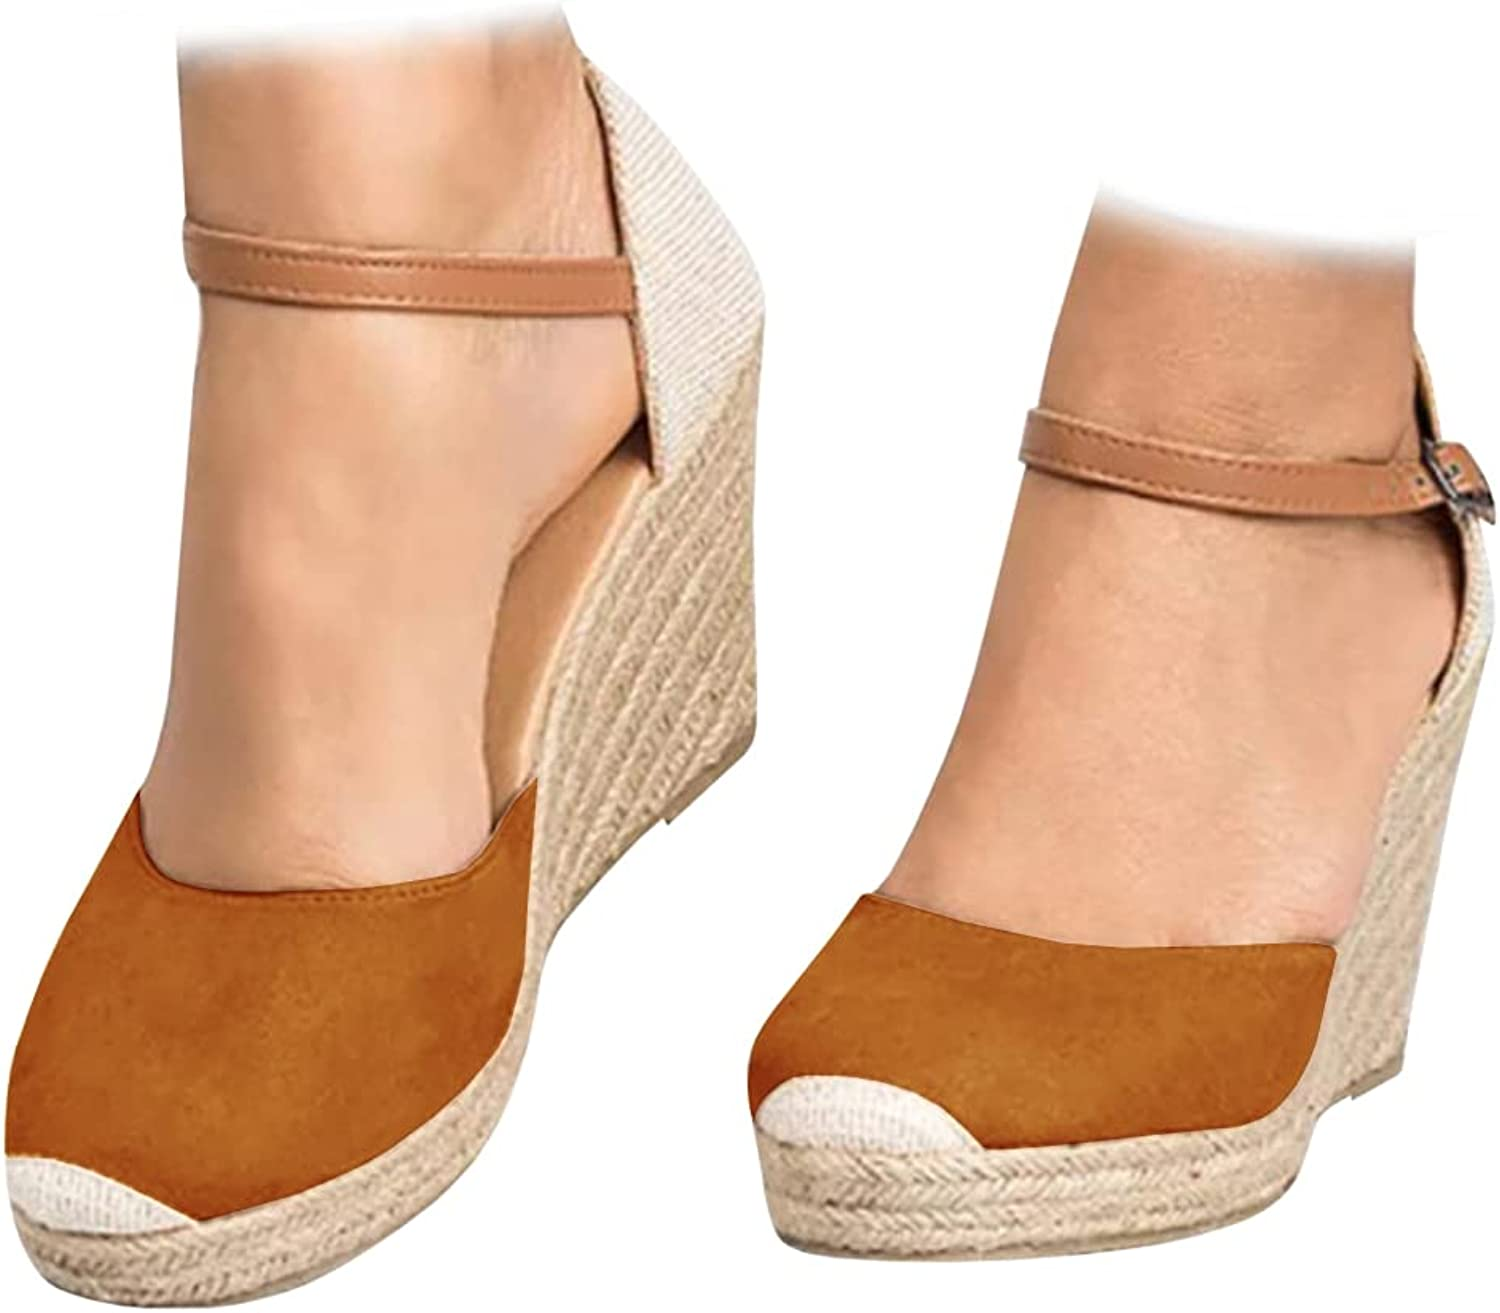 Womens Closed Toe Espadrilles Wedge Large-scale sale St Ankle Shoes Free Shipping New Heel Platform